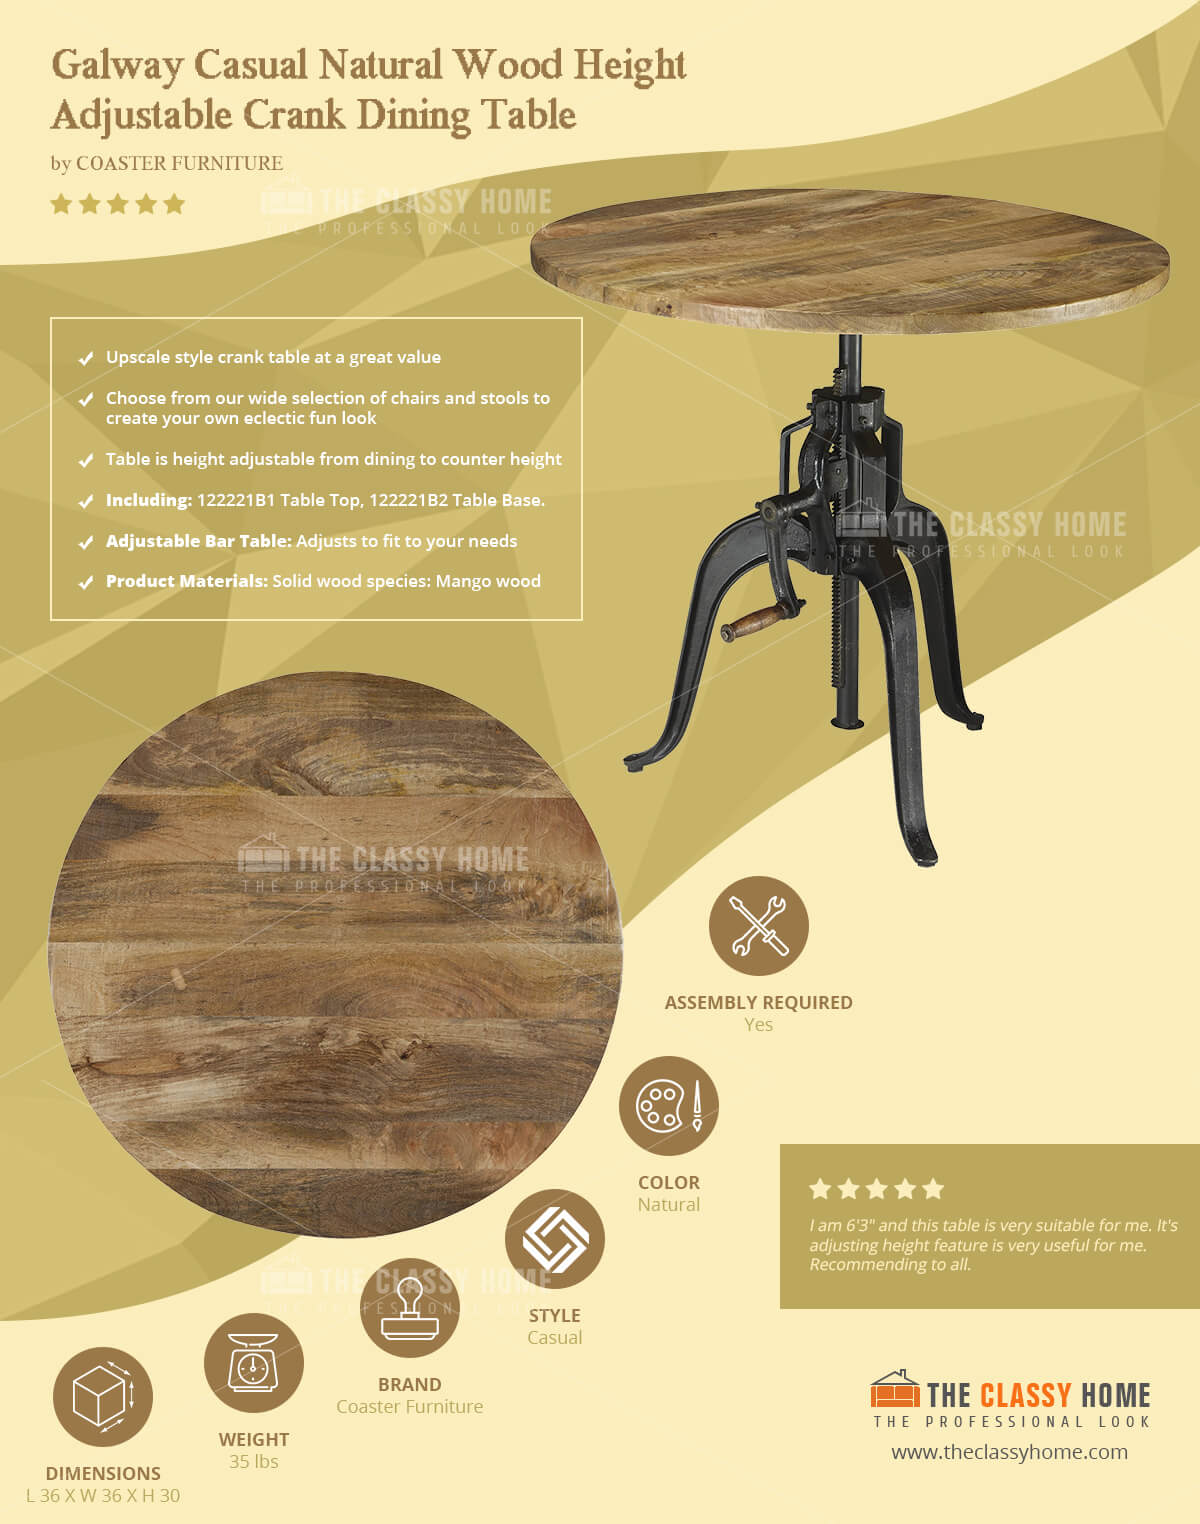 Office furniture galway - Galway Casual Natural Wood Height Adjustable Crank Dining Table Kitchen Dining Bars The Classy Home Best Deal Furniture